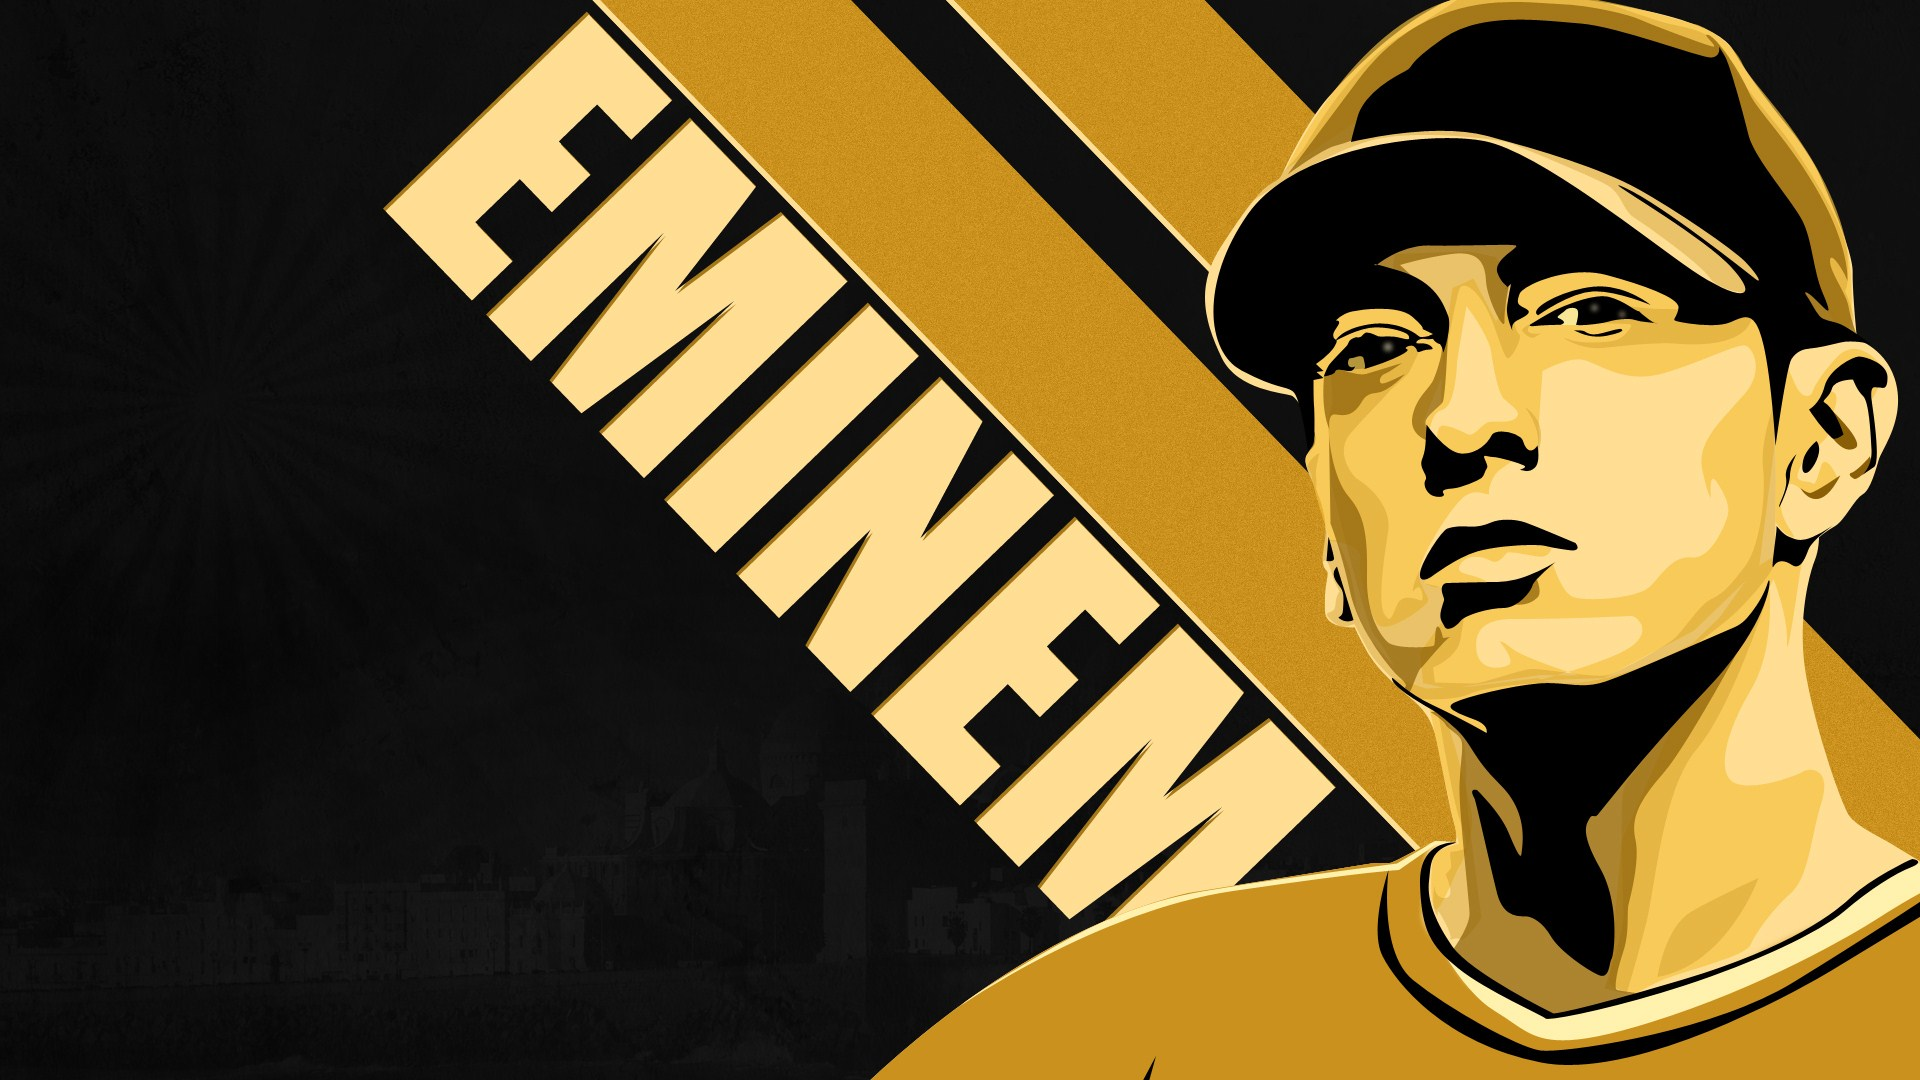 Eminem Cartooon Rap Wallpapers 1920x1080